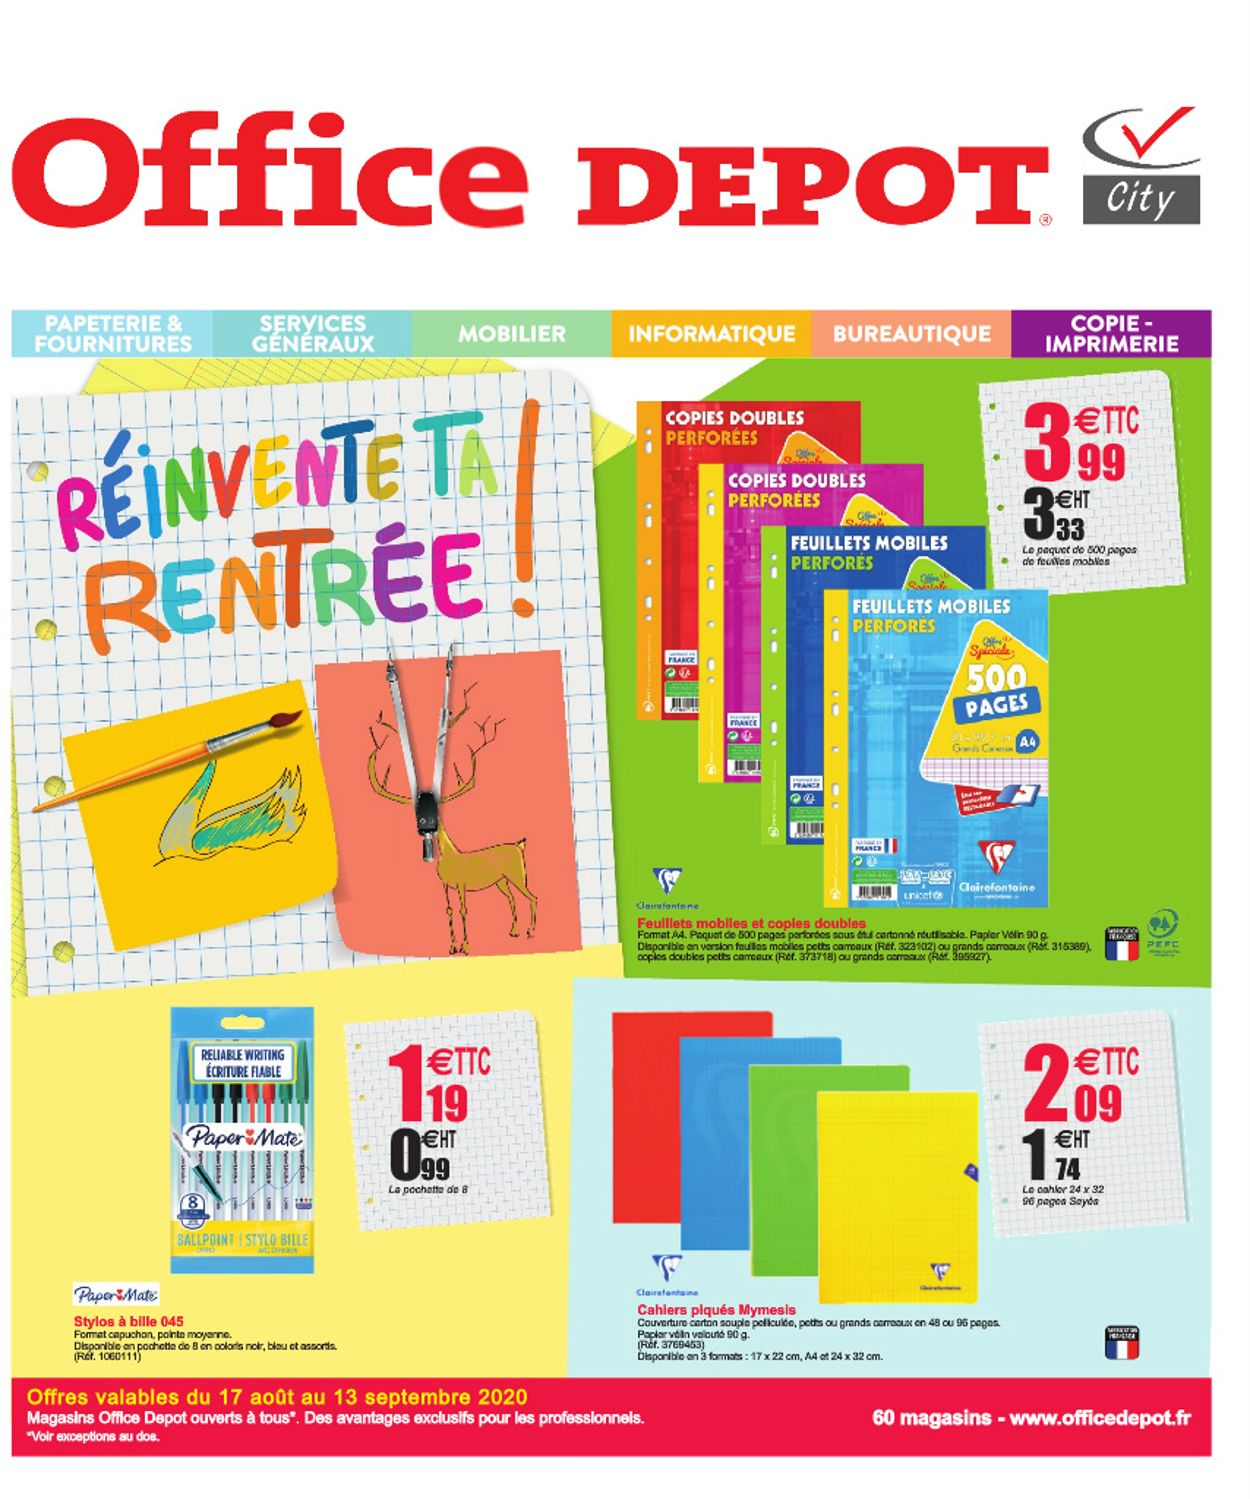 Office Depot Catalogue - 17.08-13.09.2020